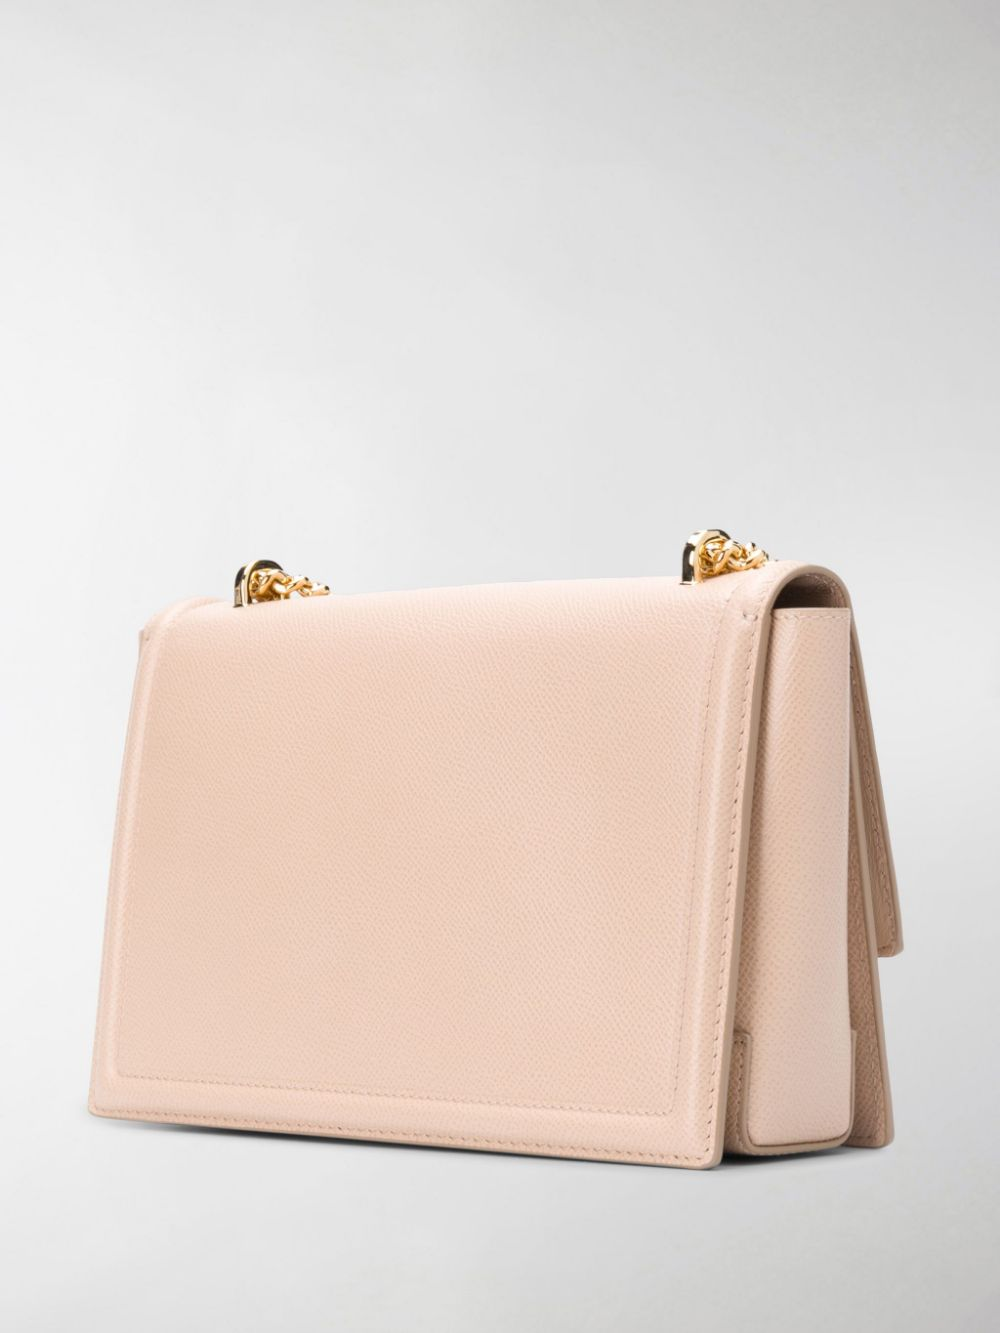 Picture of Ferragamo | Ginny Shoulder Bag